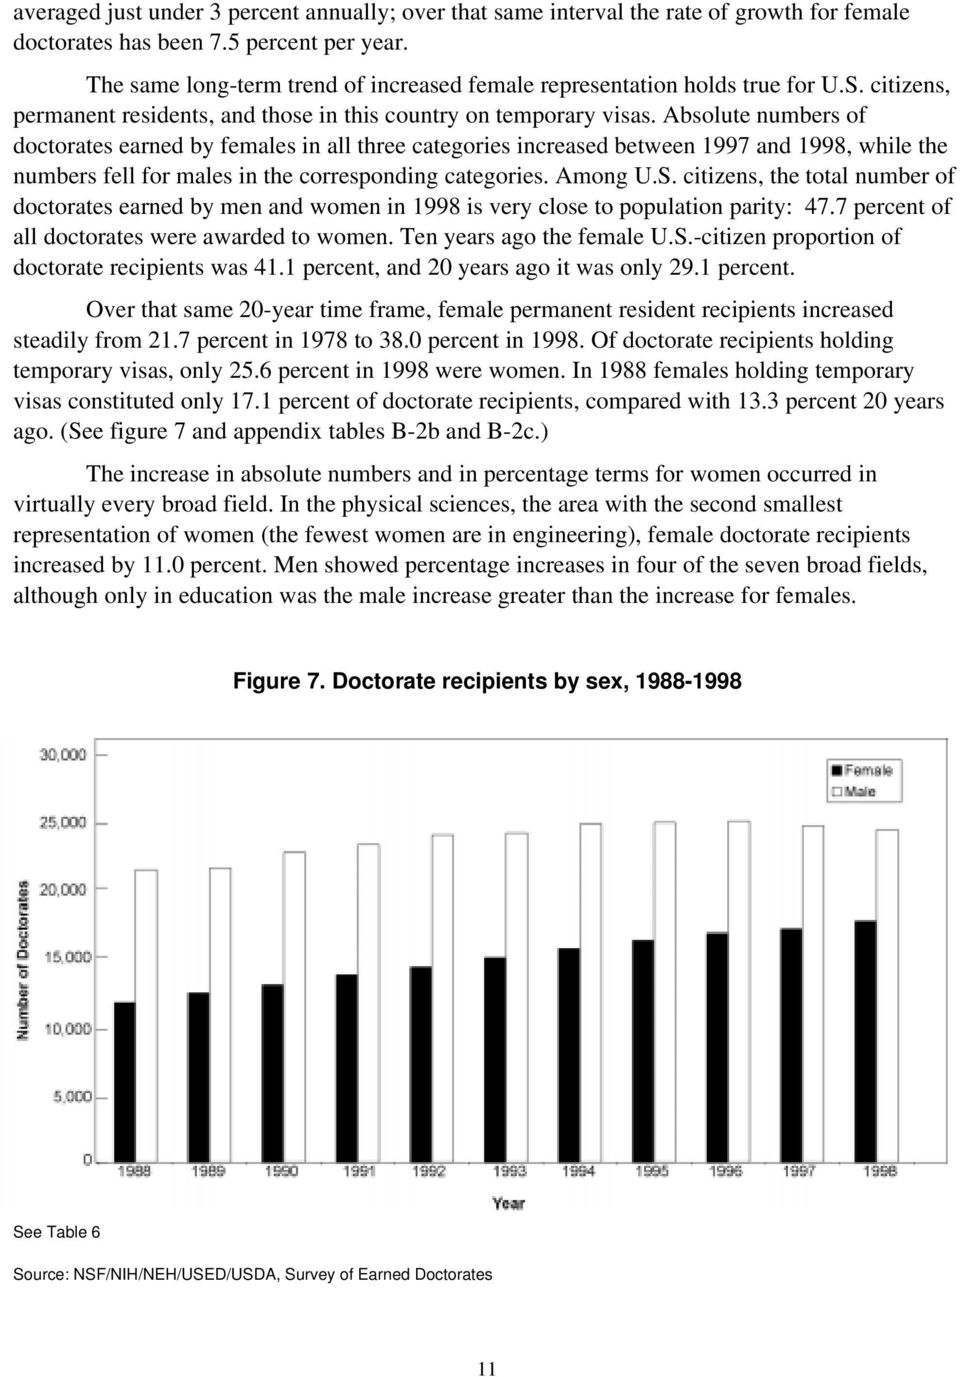 Absolute numbers of doctorates earned by females in all three categories increased between 1997 and 1998, while the numbers fell for males in the corresponding categories. Among U.S.